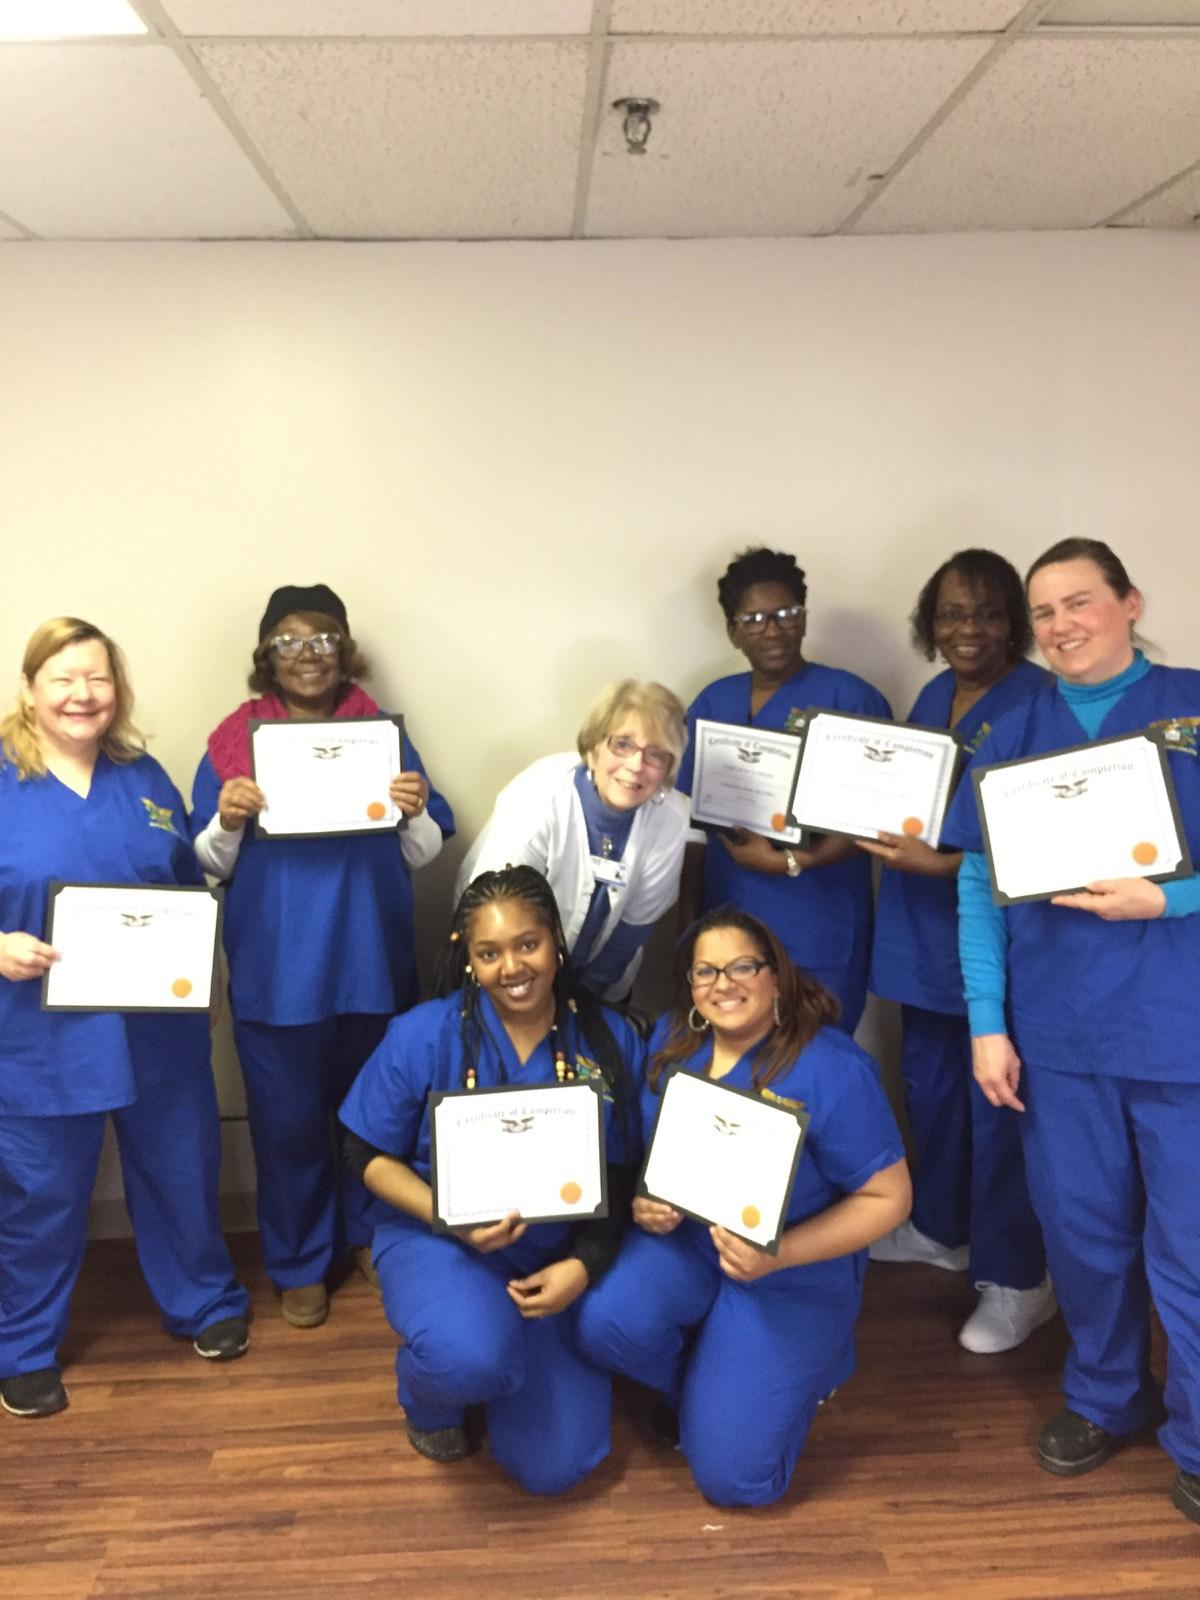 Congratulations To The Certified Home Health Aide Class Of February